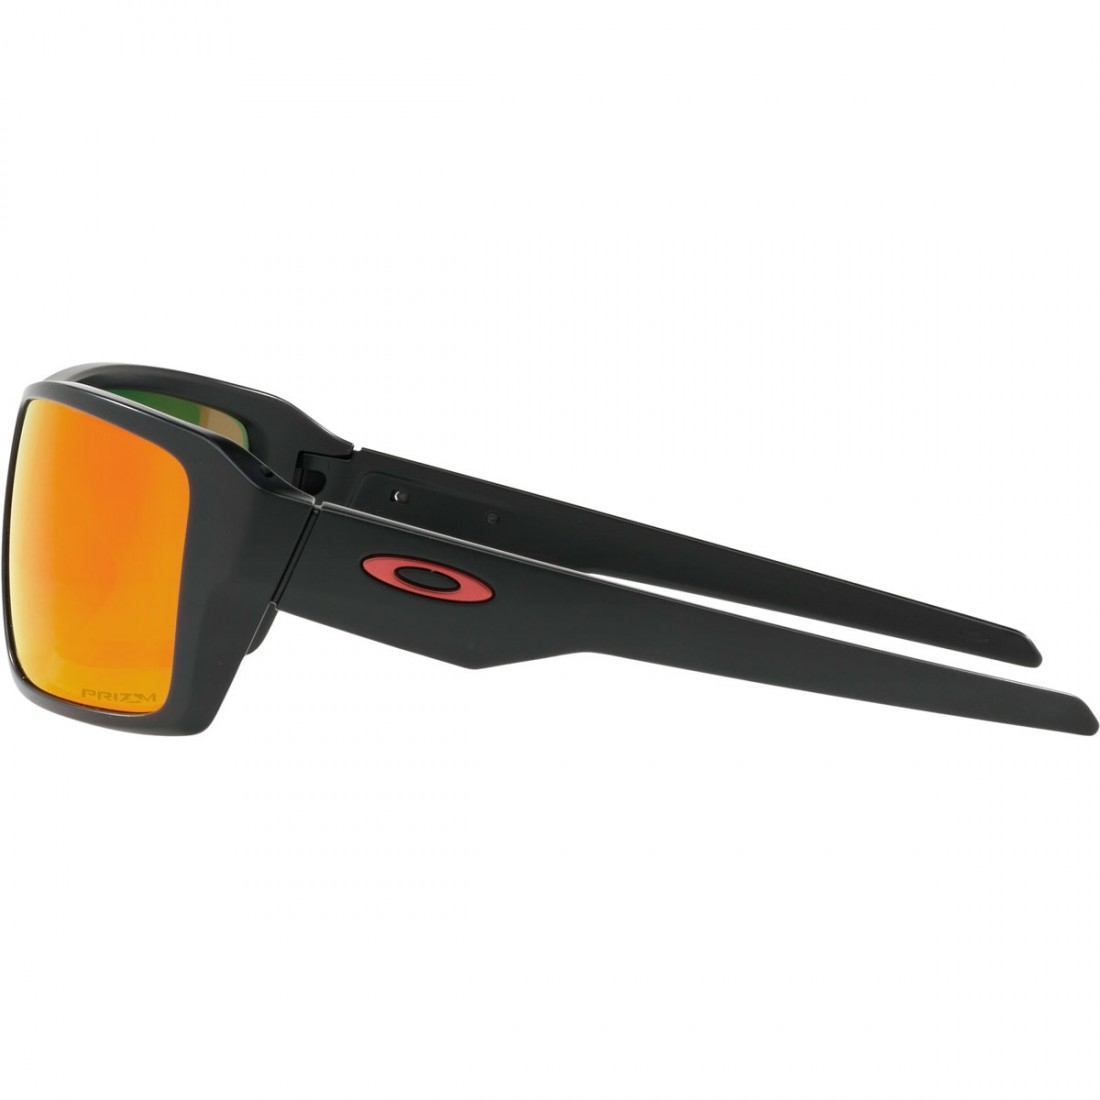 0d4ec61017 OAKLEY Double Edge Matte Black   Prizm Ruby Polarized Sun glasses ...